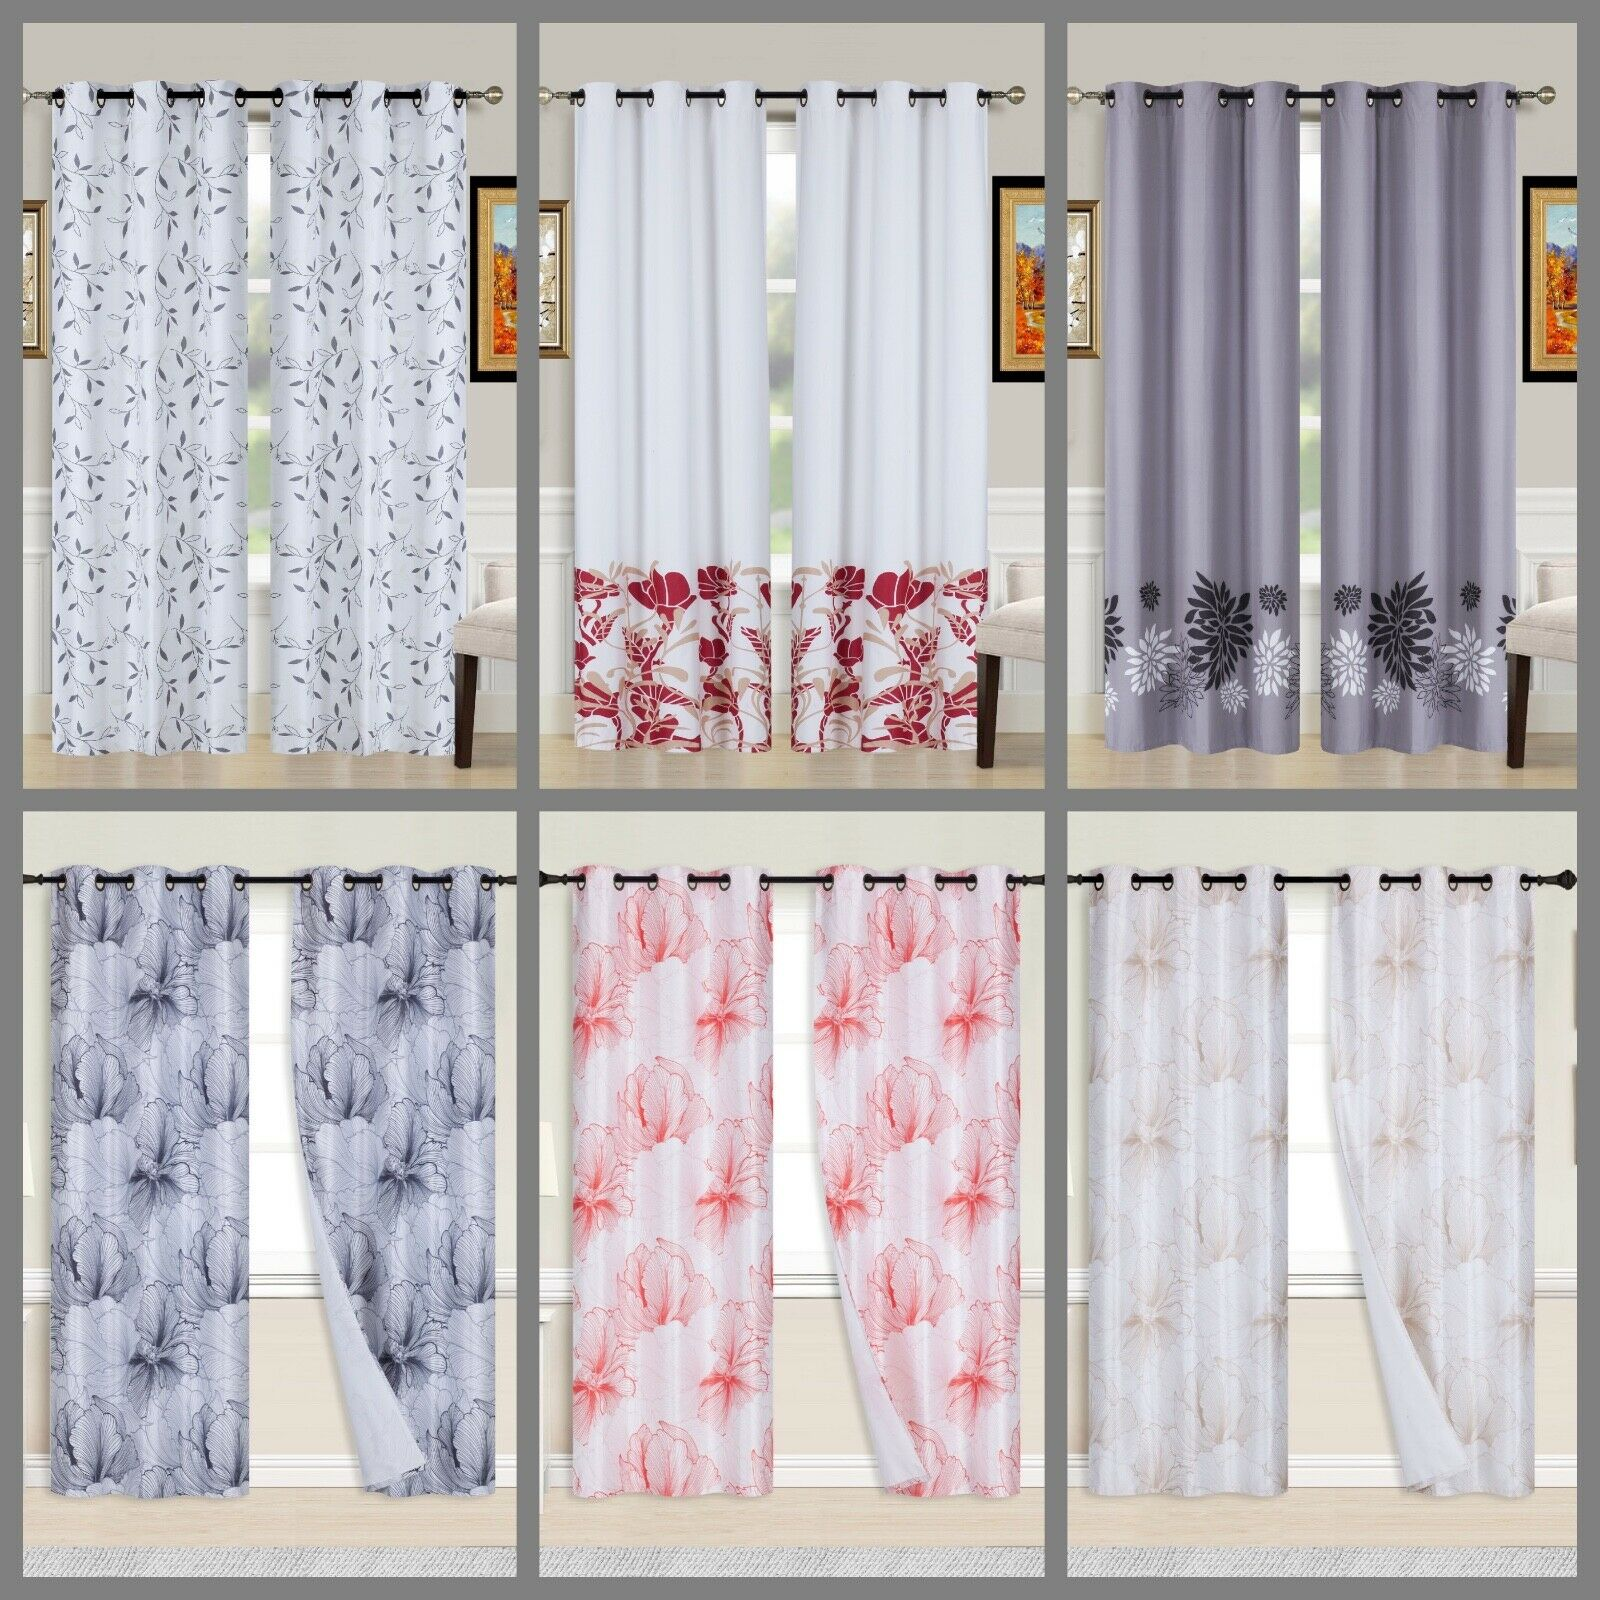 2PC Printed Blackout Window Curtains Bedroom Living Room Whi